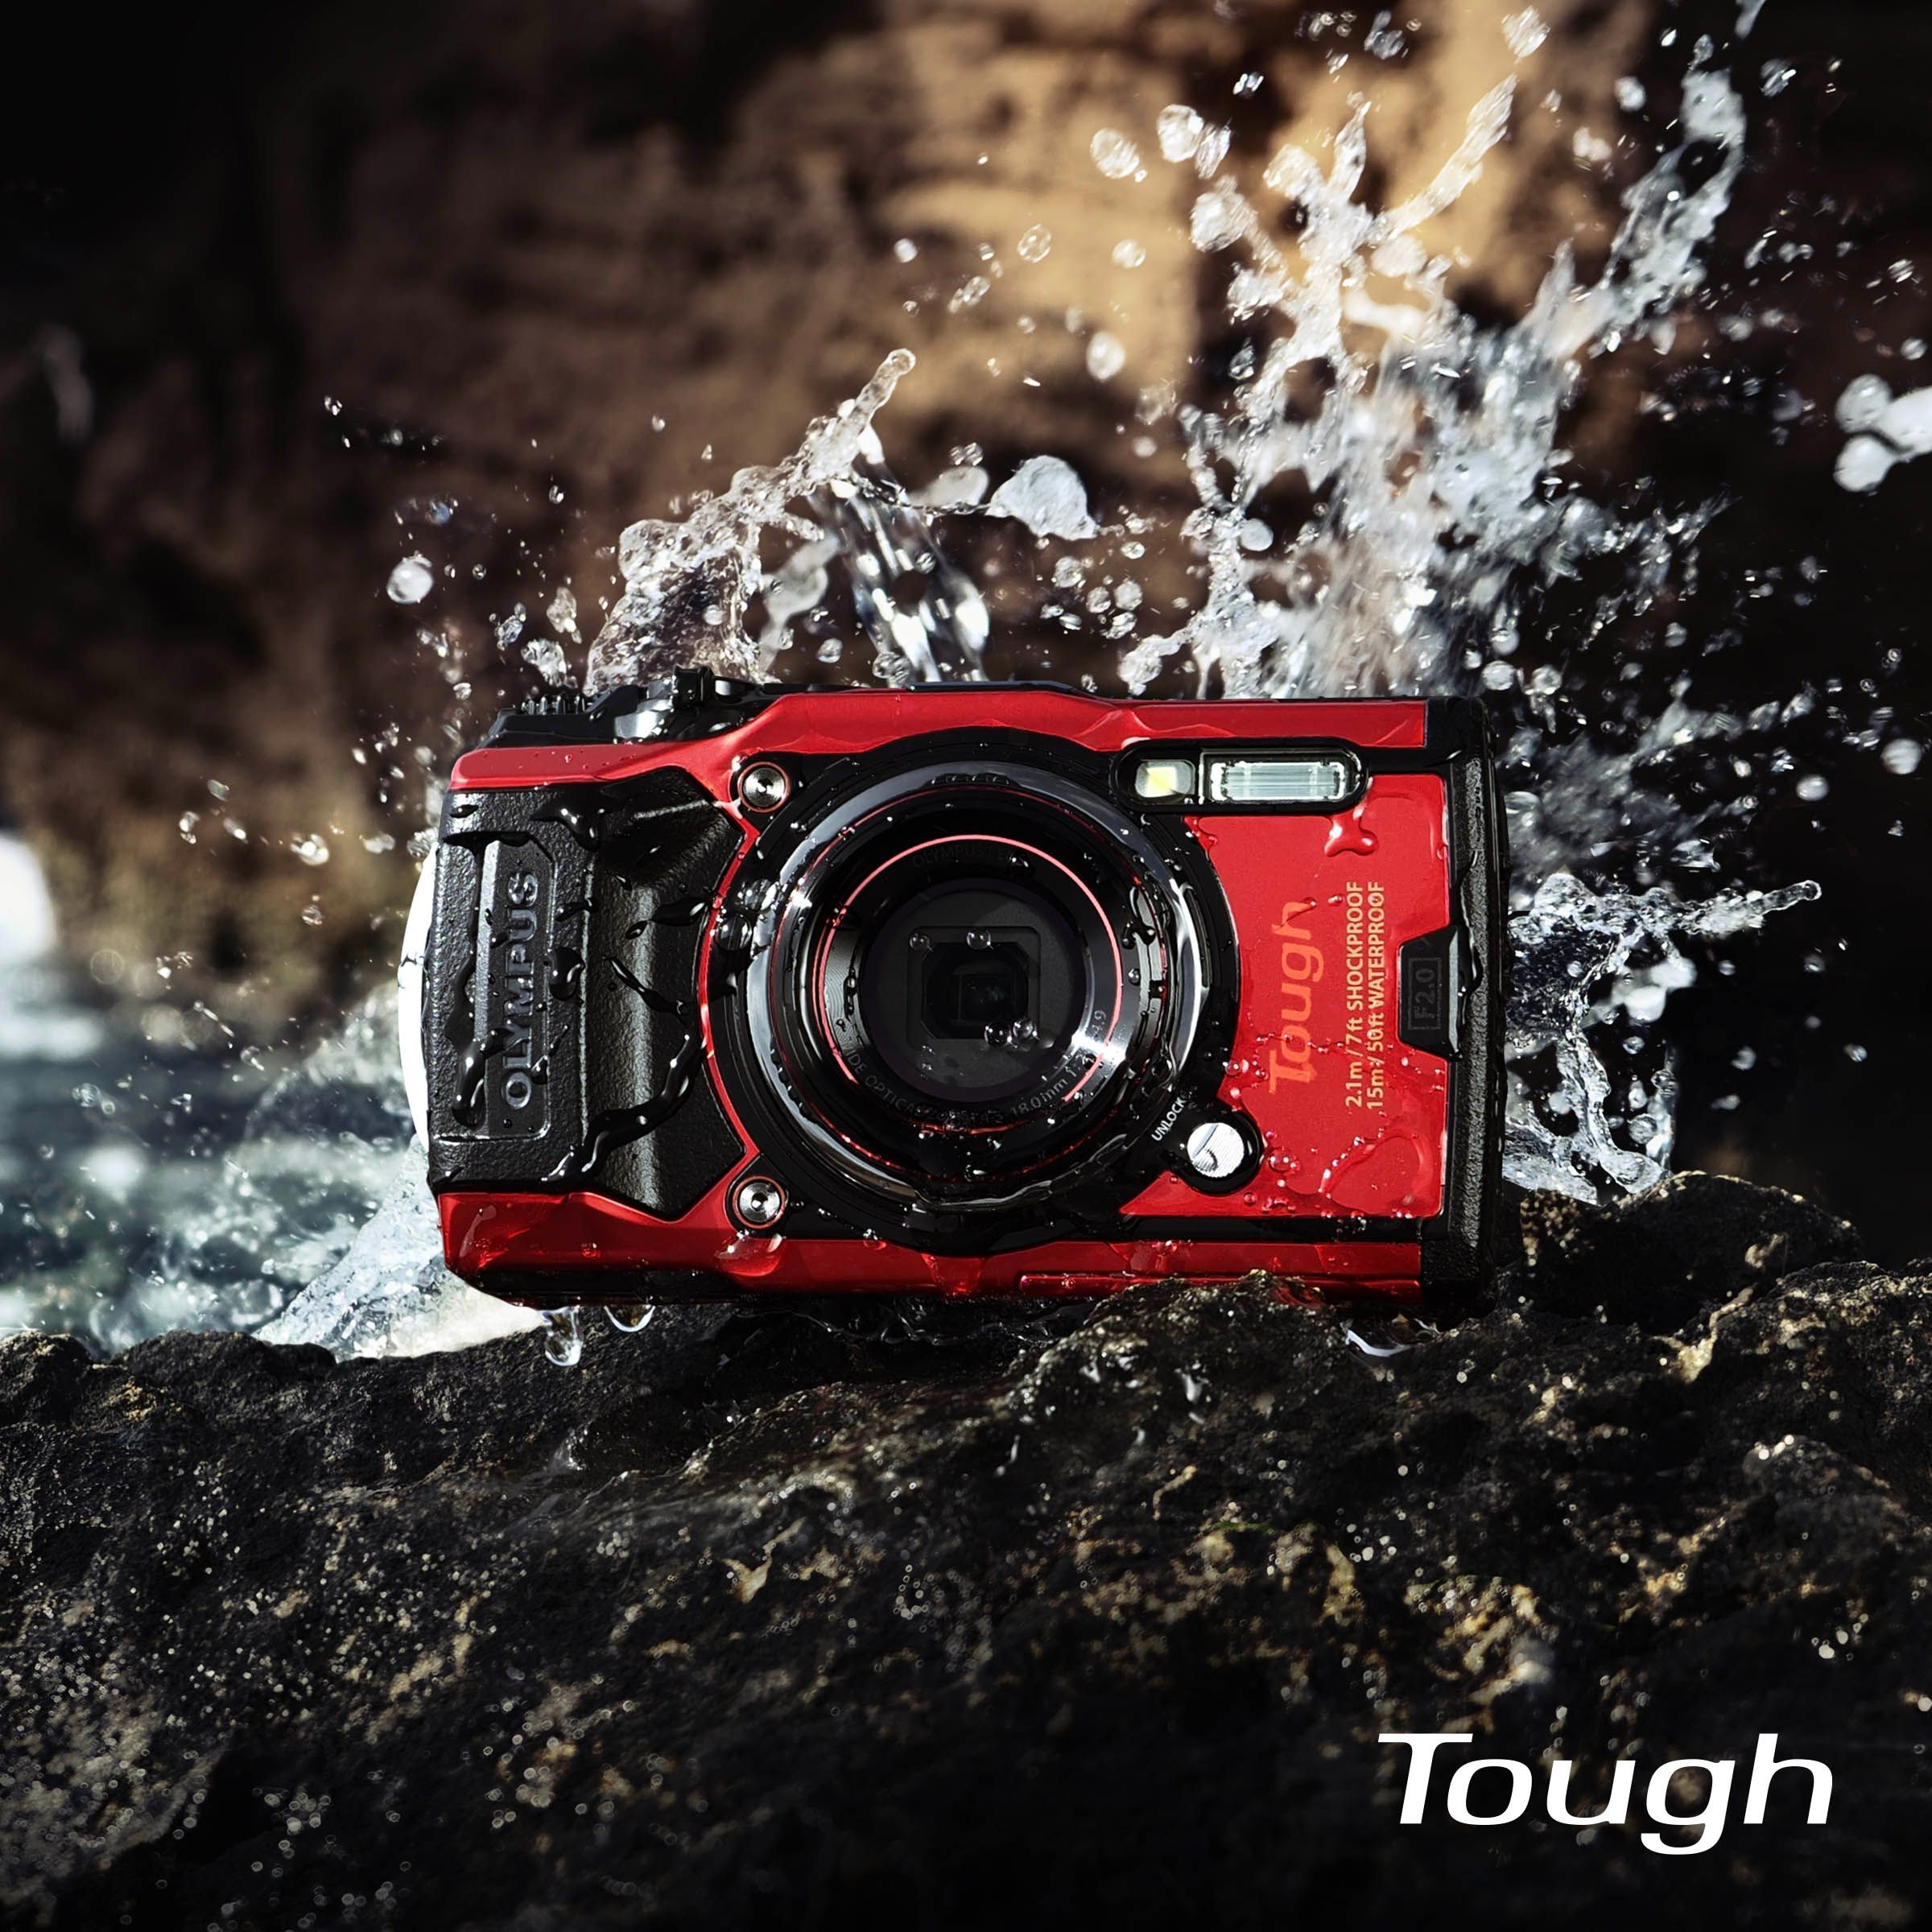 Shoot perfect shots on the latest tough camera